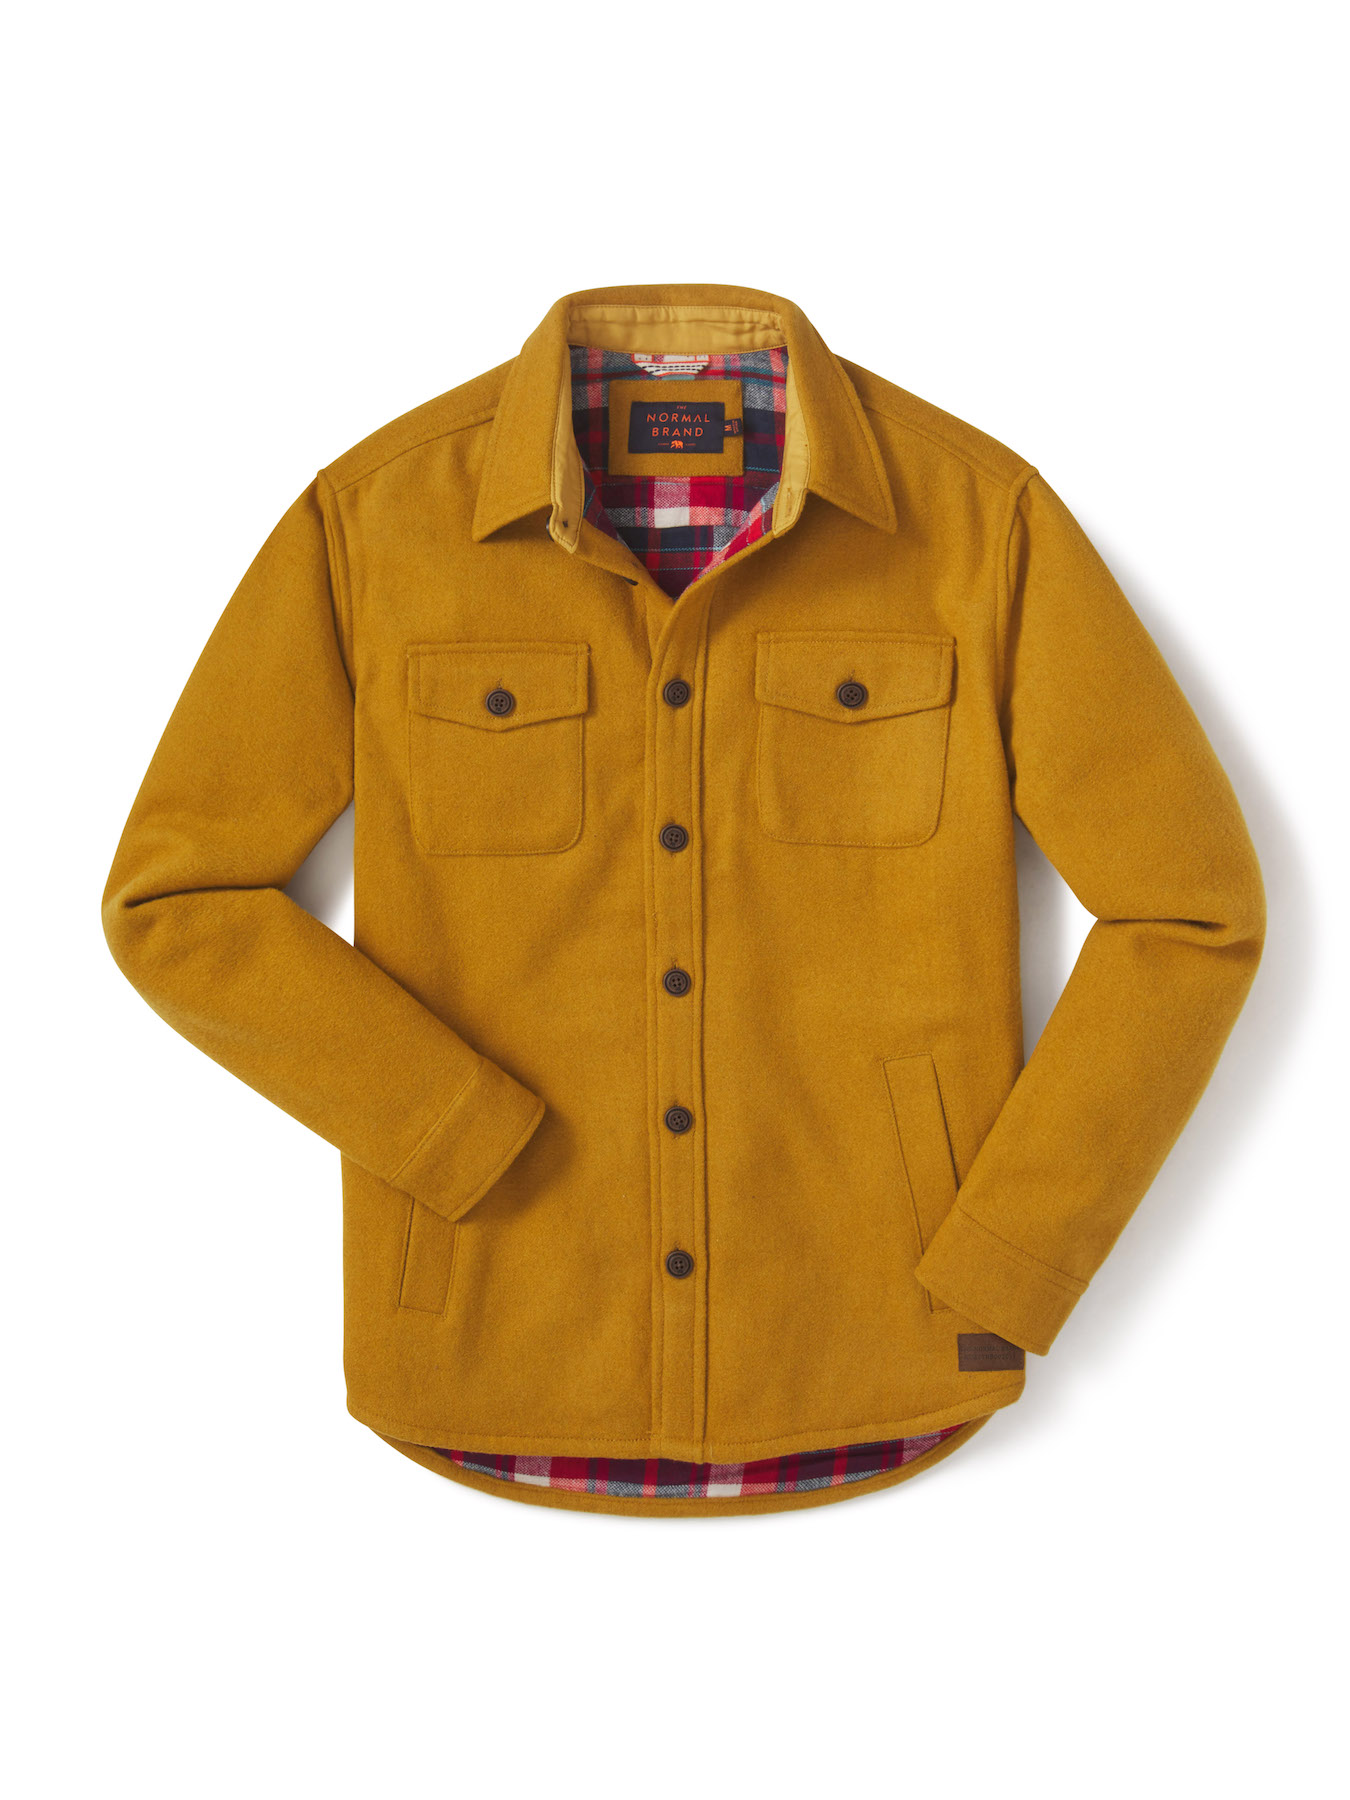 The-Normal-Brand-Table-Flat-Lay-Damion-Lloyd-Photography-Commercial-Product-Laydown-Apparel-Clothing-Los-Angeles-Orange-County-yellow-jacket